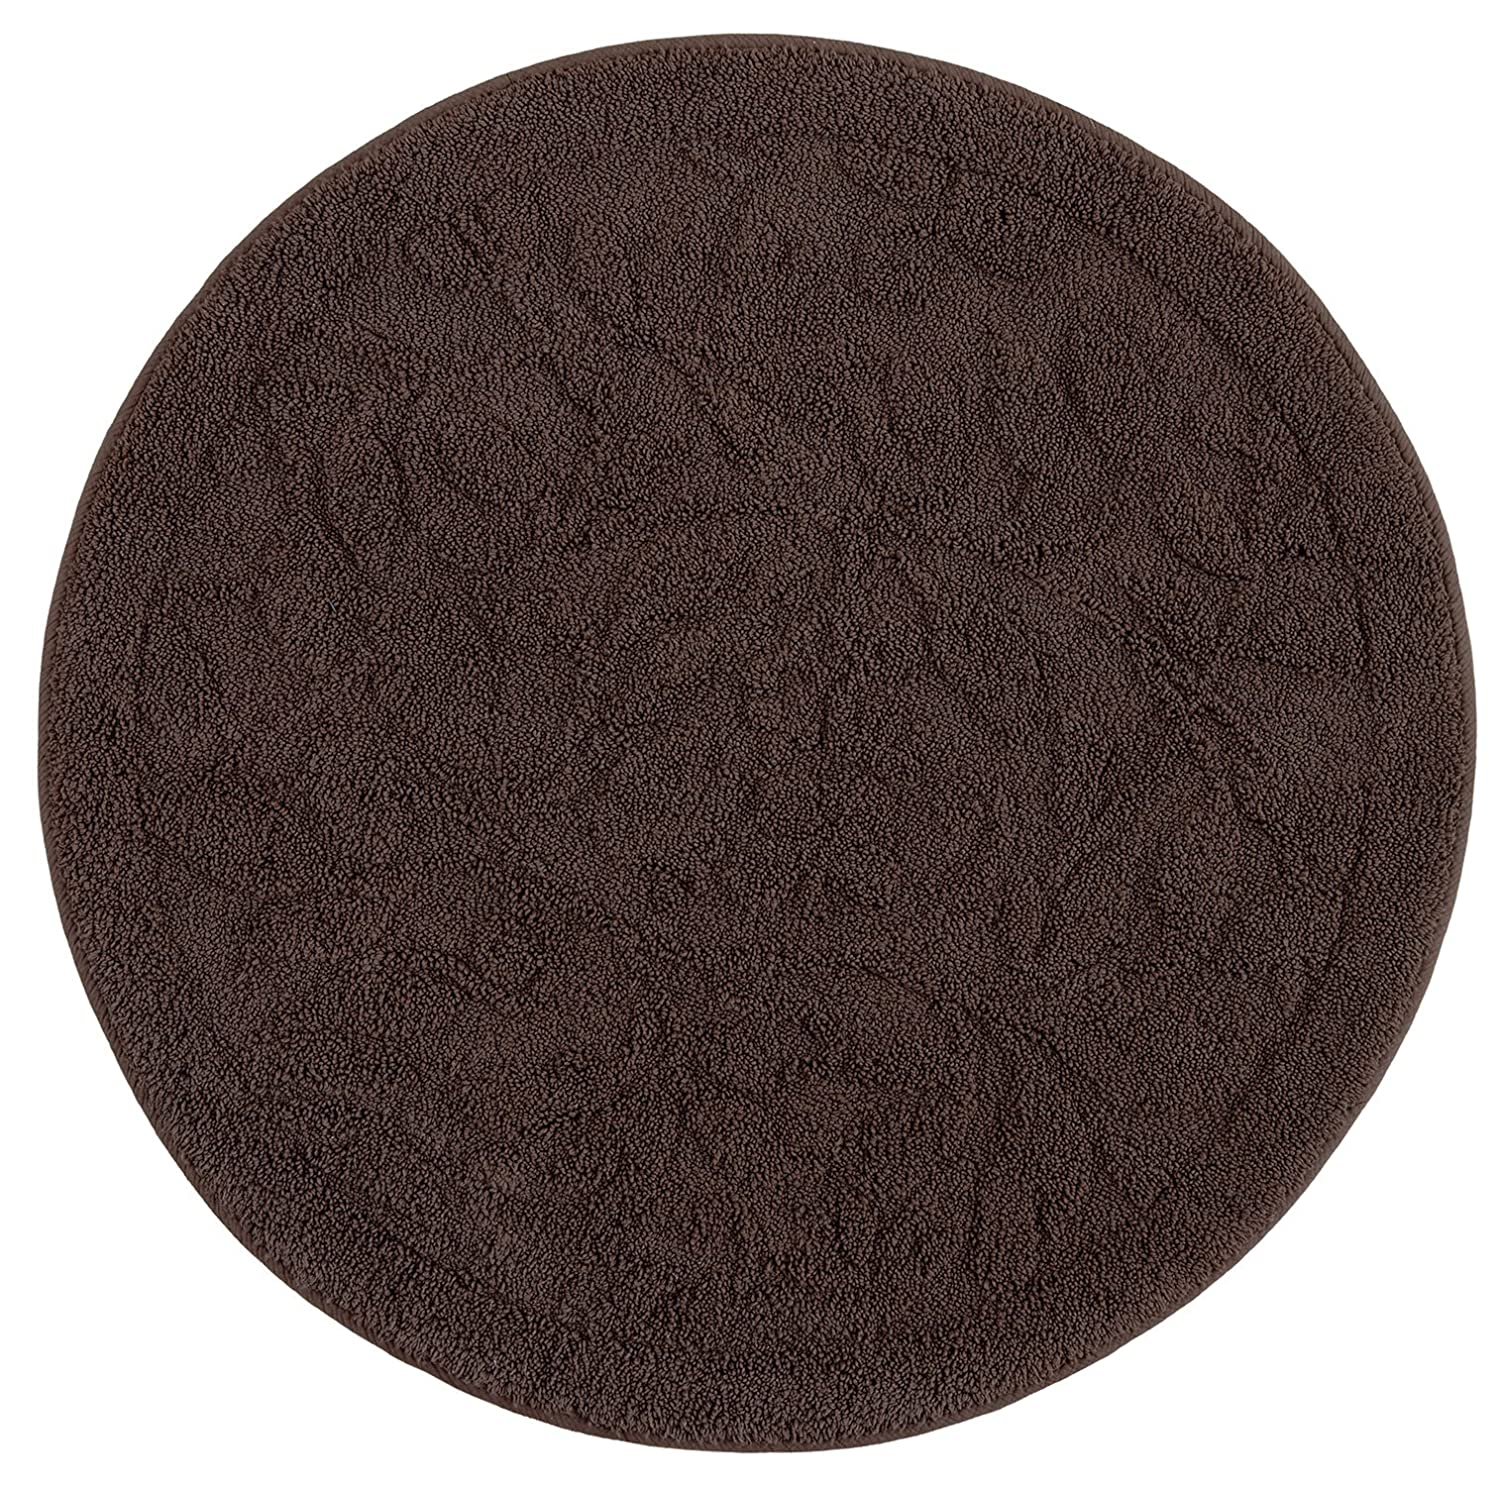 Chocolate 3'x3' Mohawk Home Foliage Cabernet Accent Rug, 3'x5'